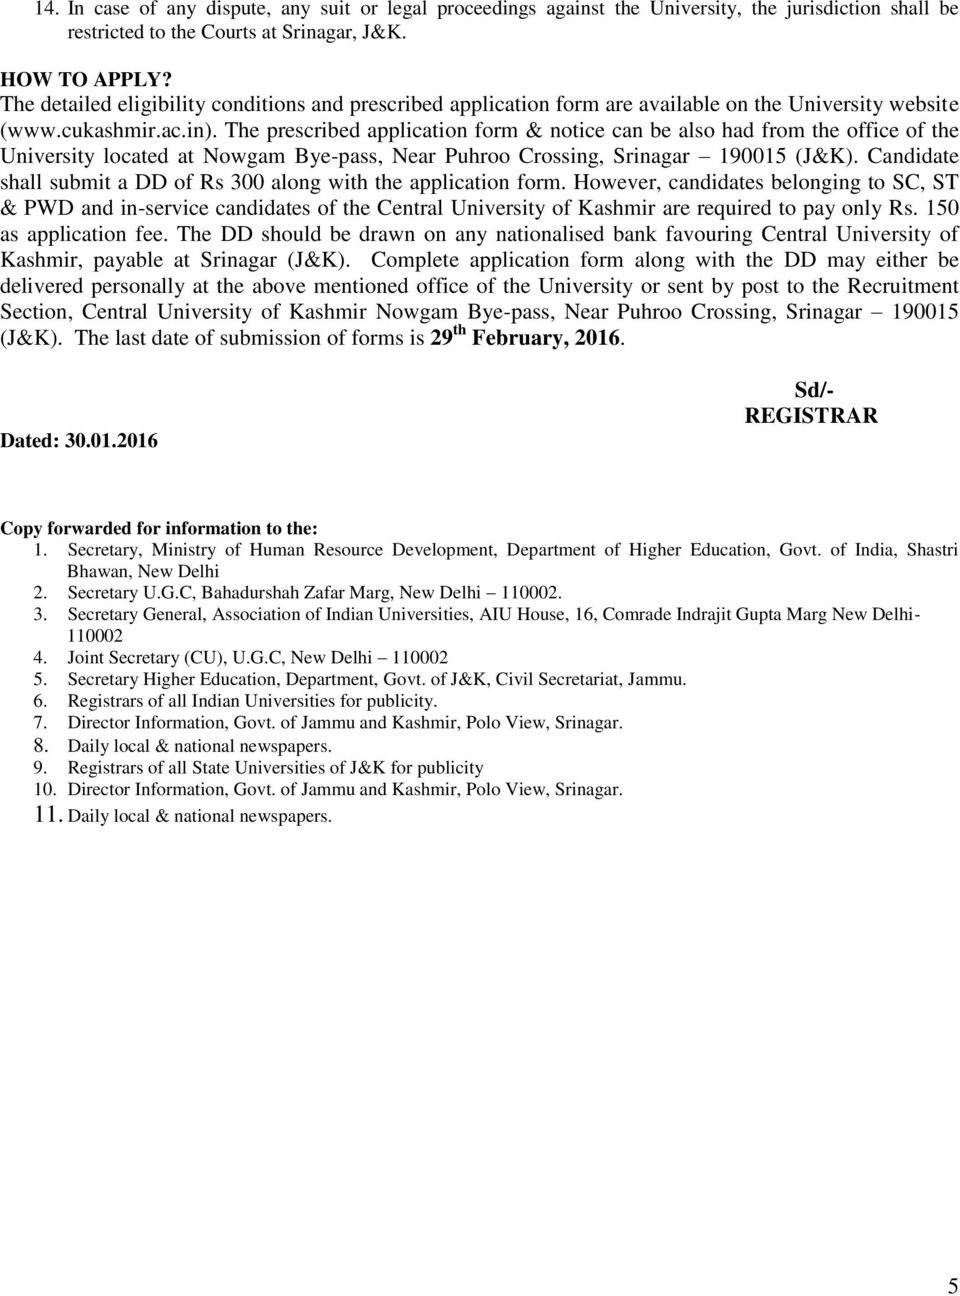 The prescribed application form & notice can be also had from the office of the University located at Nowgam Bye-pass, Near Puhroo Crossing, Srinagar 190015 (J&K).